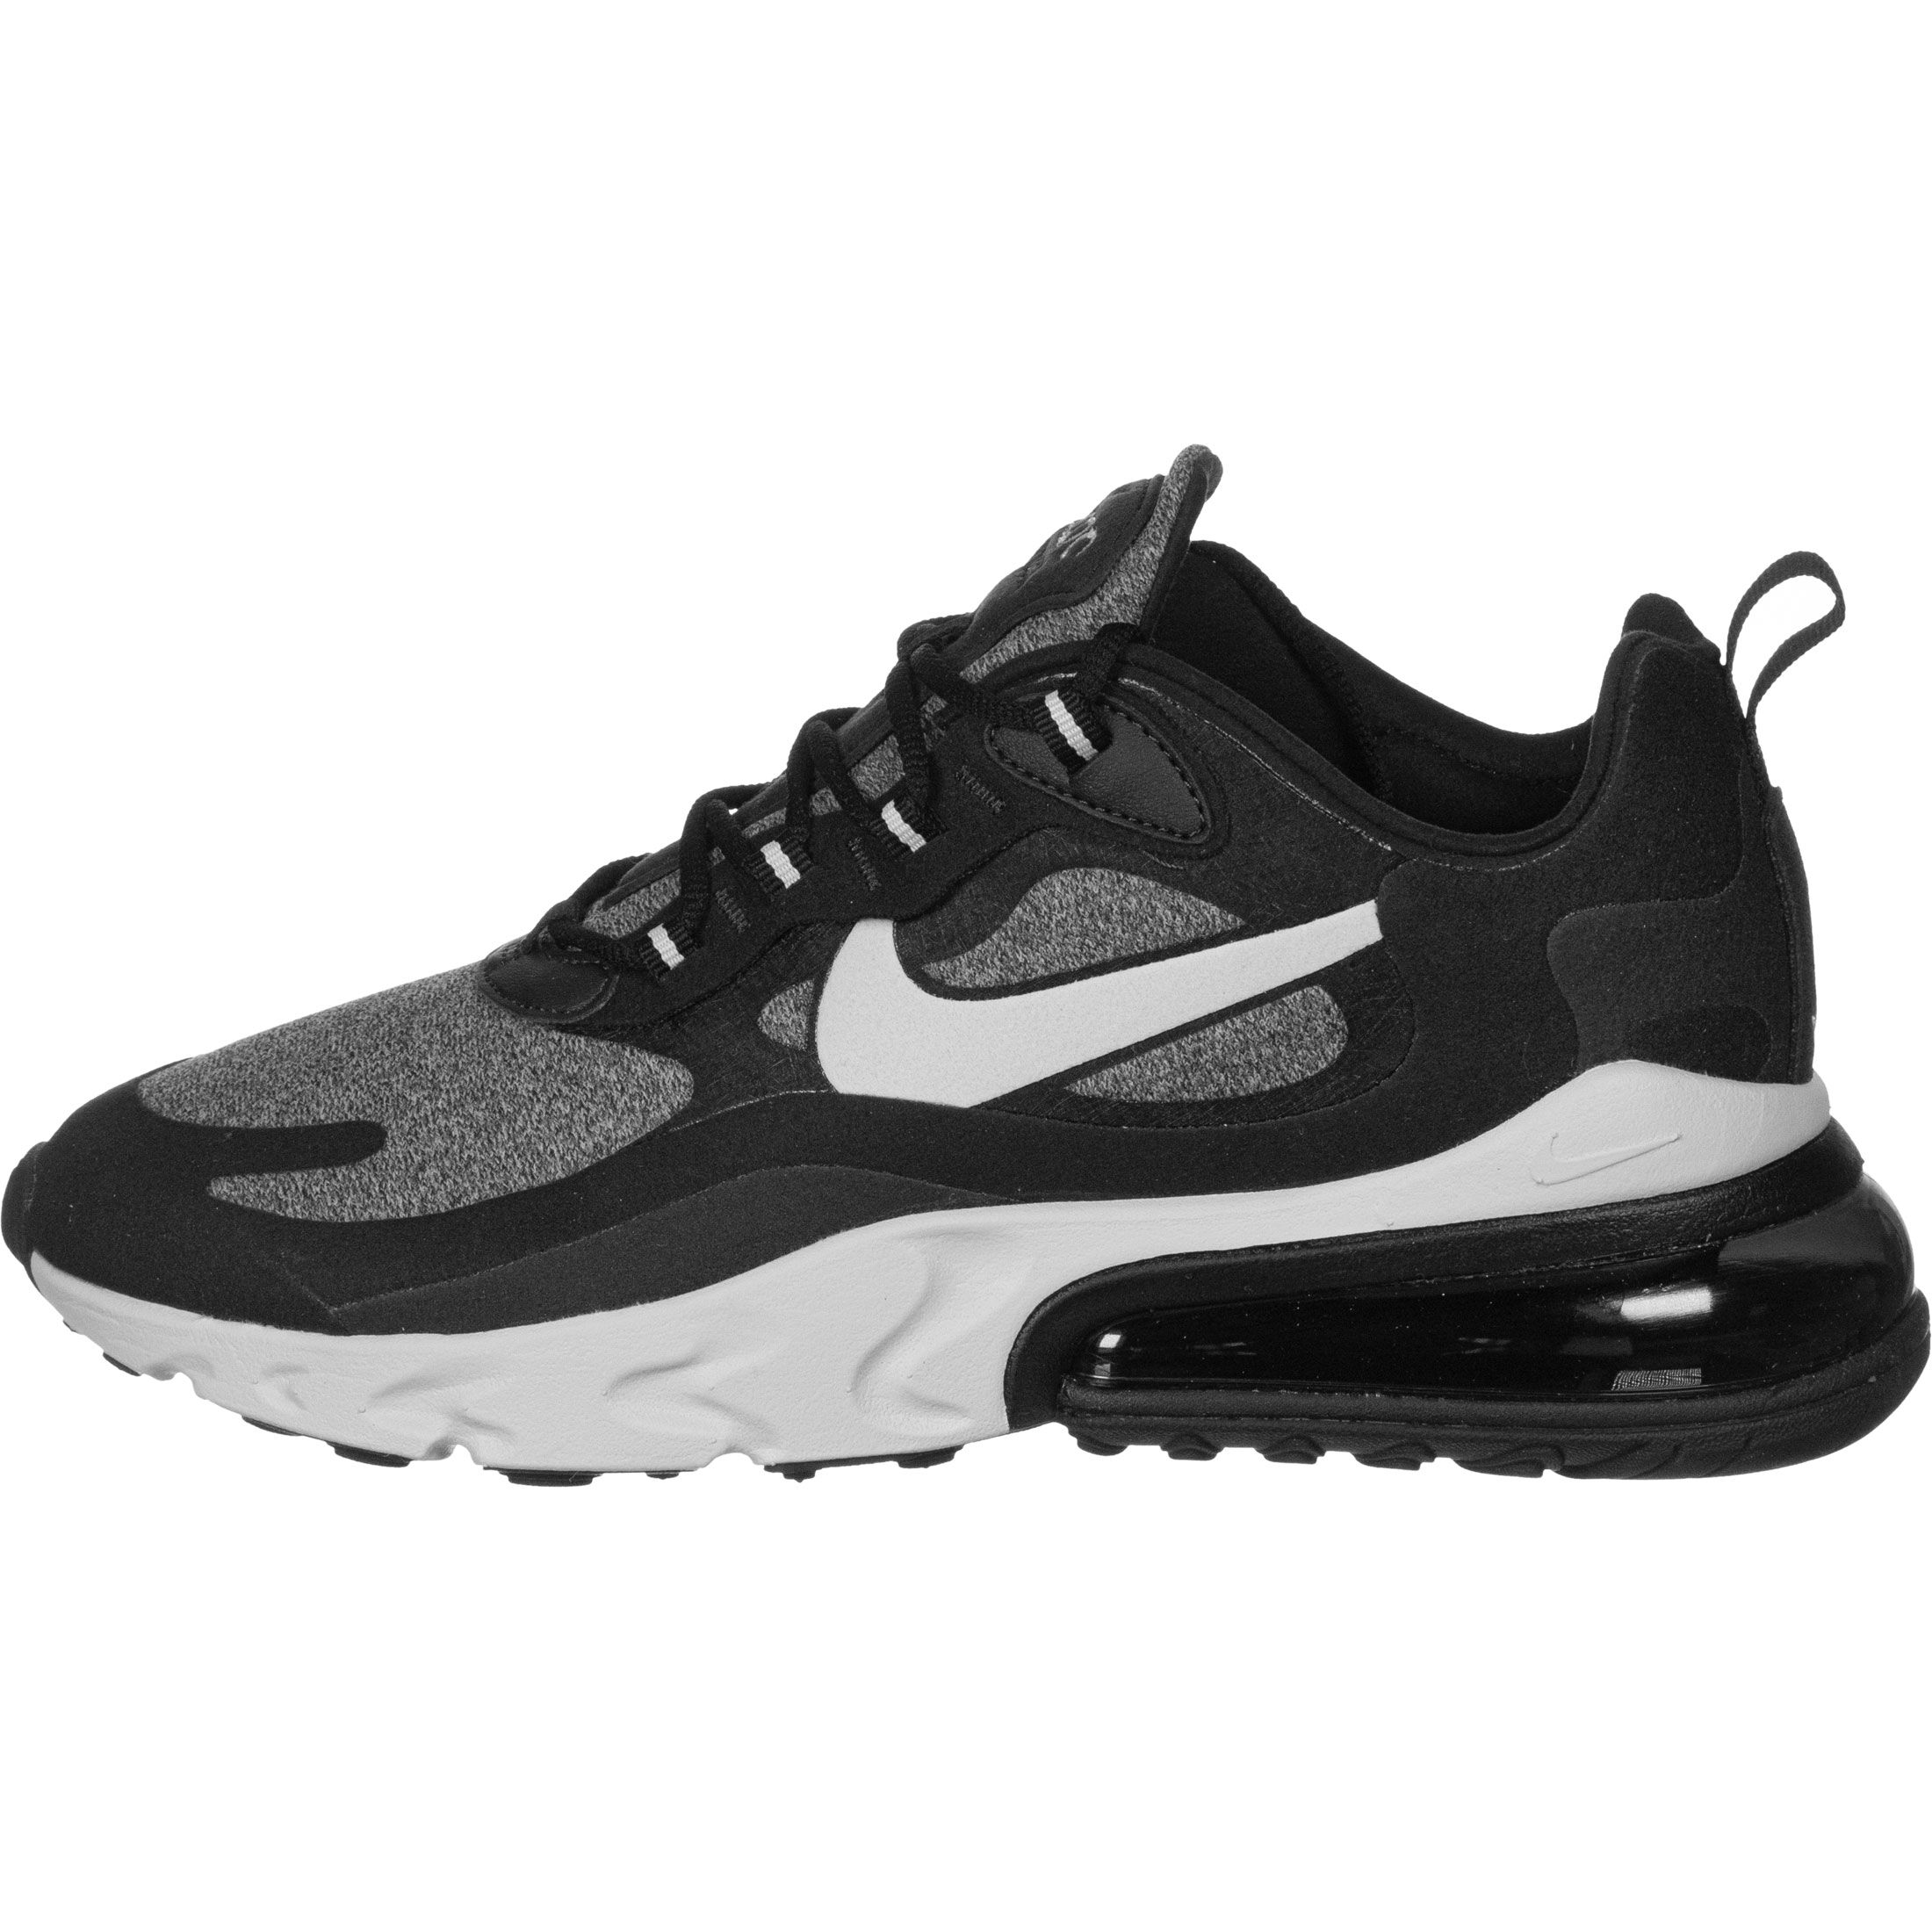 Air Max 270 React Baskets low Hommes chez Stylefile